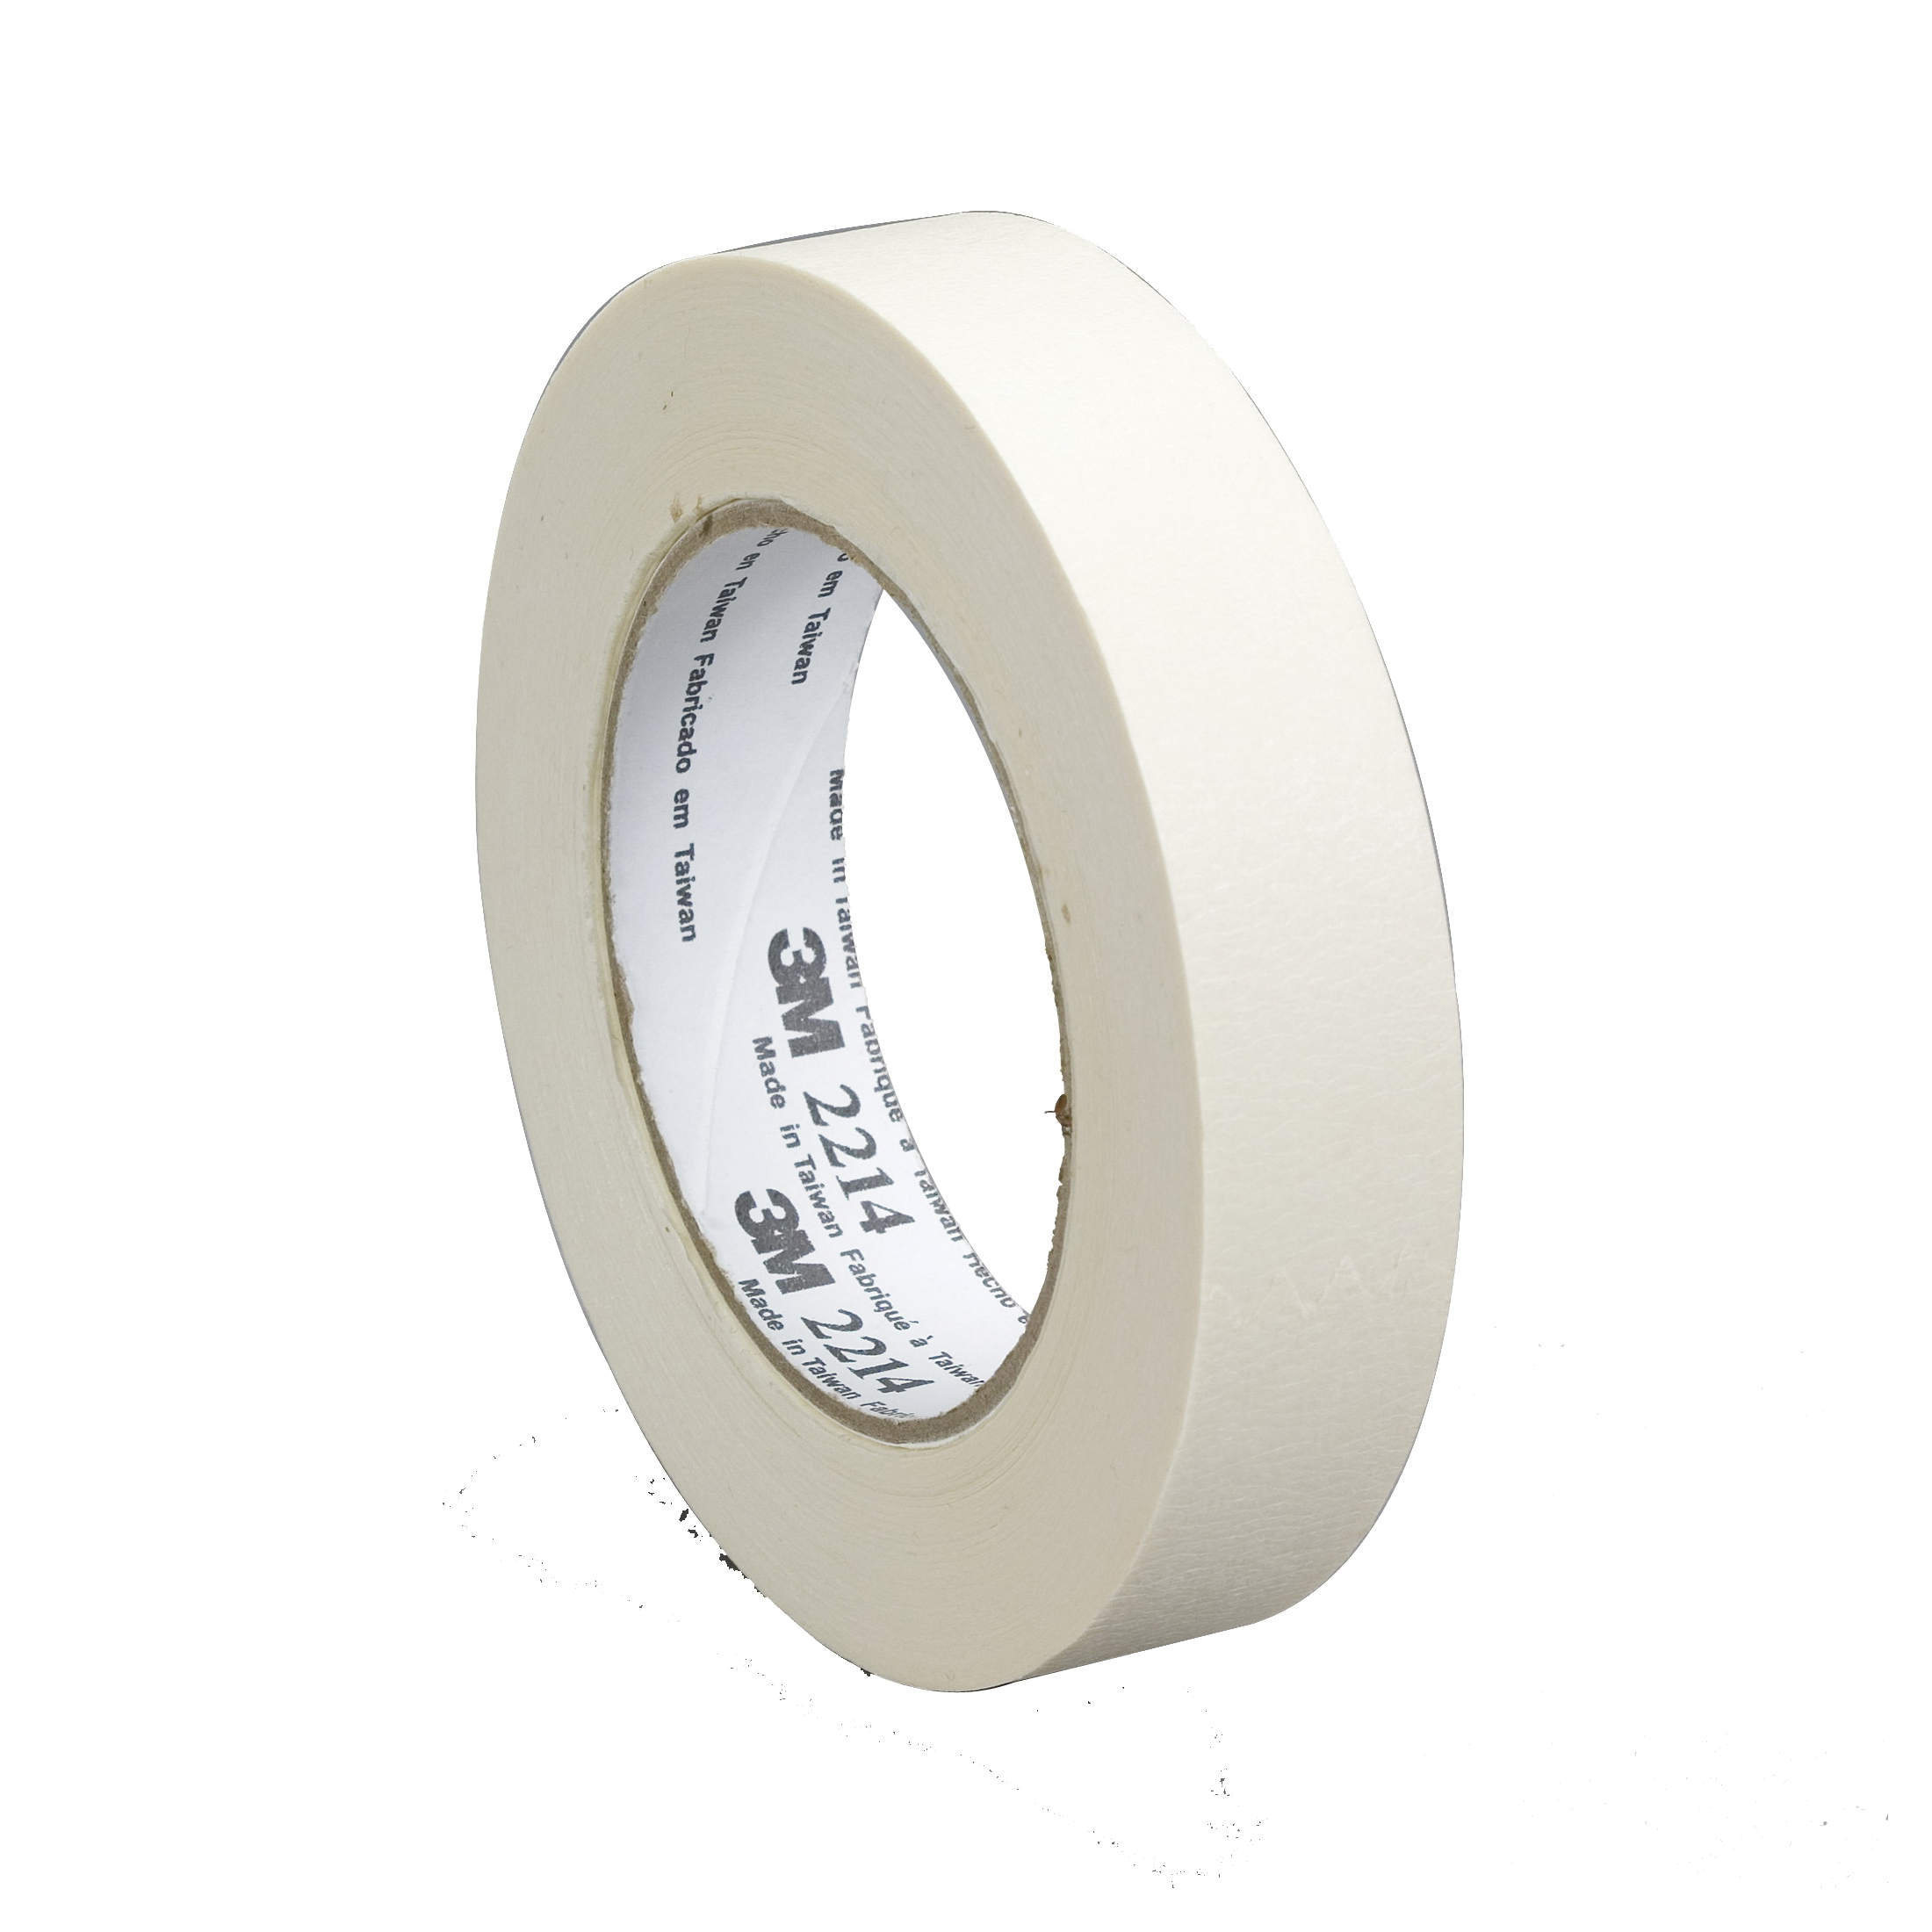 3M™ 021200-26075 Masking Tape, 55 m L x 24 mm W, 5.4 mil THK, Rubber Adhesive, Crepe Paper Backing